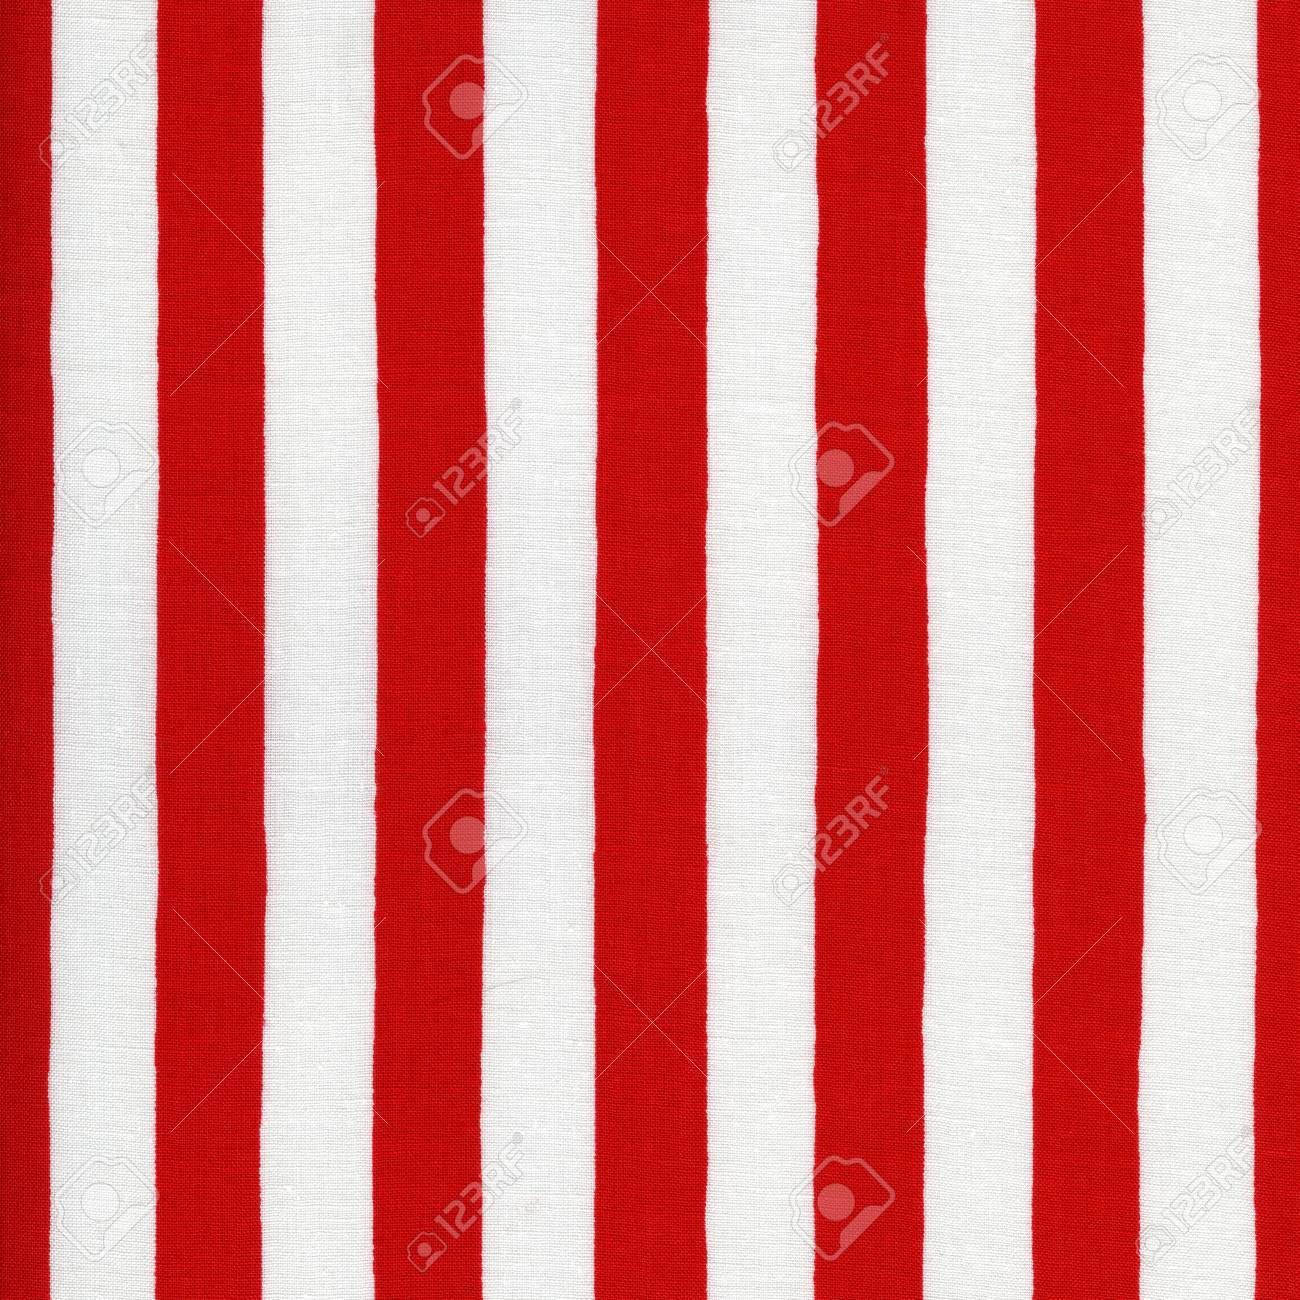 Endless White And Red Striped Fabric Stock Photo Picture And